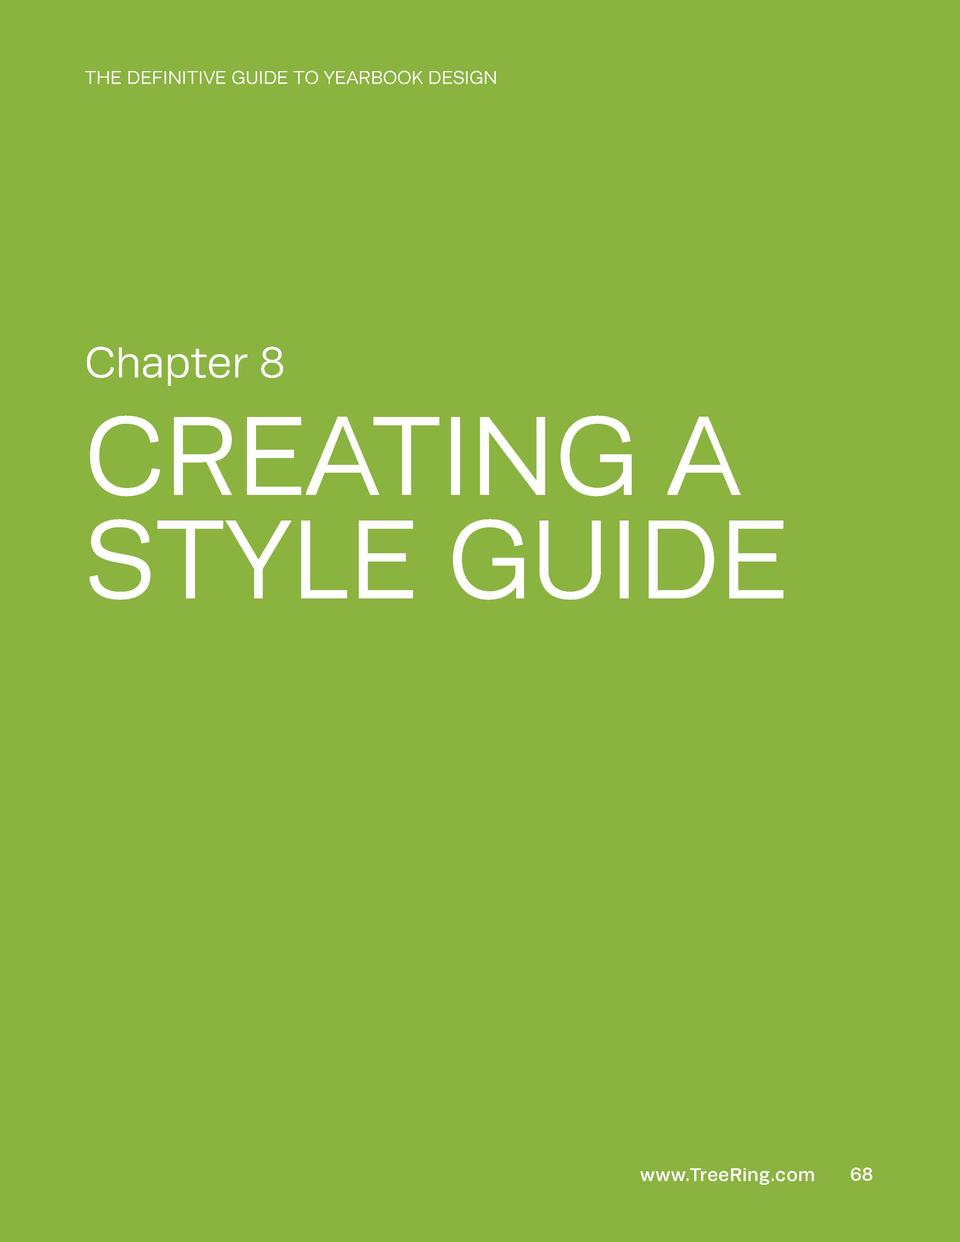 THE DEFINITIVE GUIDE TO YEARBOOK DESIGN  Chapter 8  CREATING A STYLE GUIDE  www.TreeRing.com  68